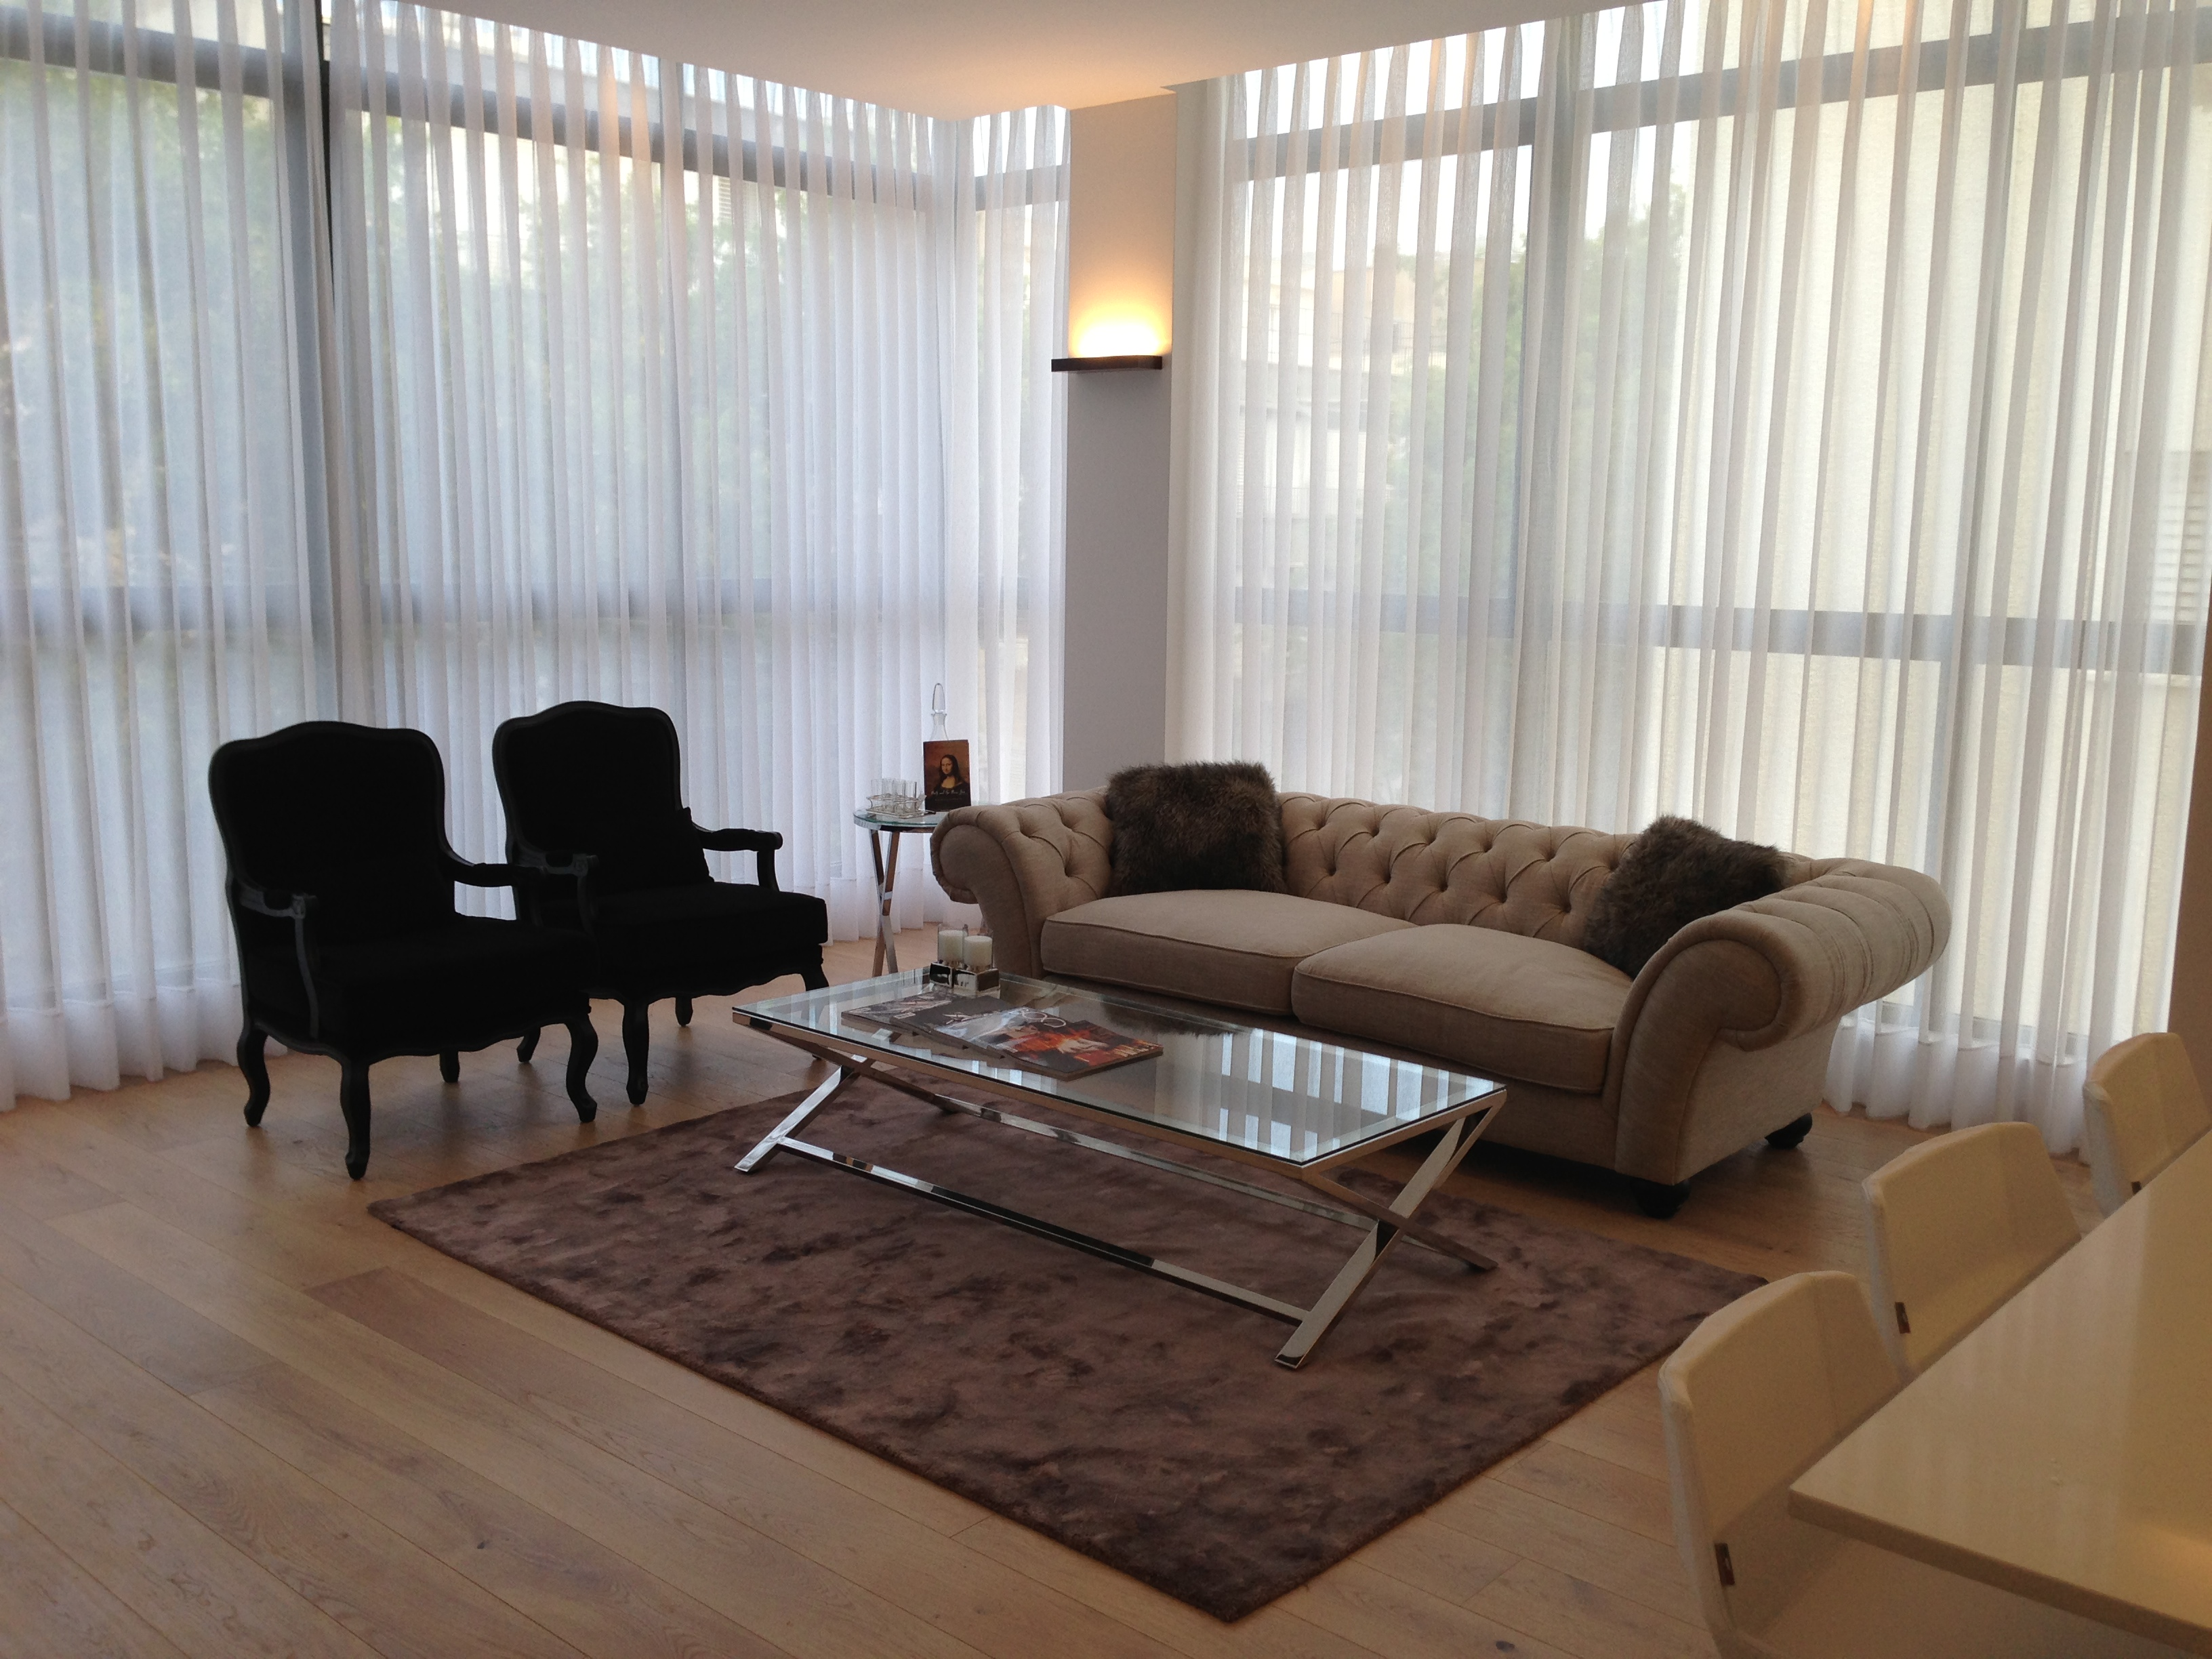 Stunning 3BR Apartment for Sale on Shlomo HaMelekh St